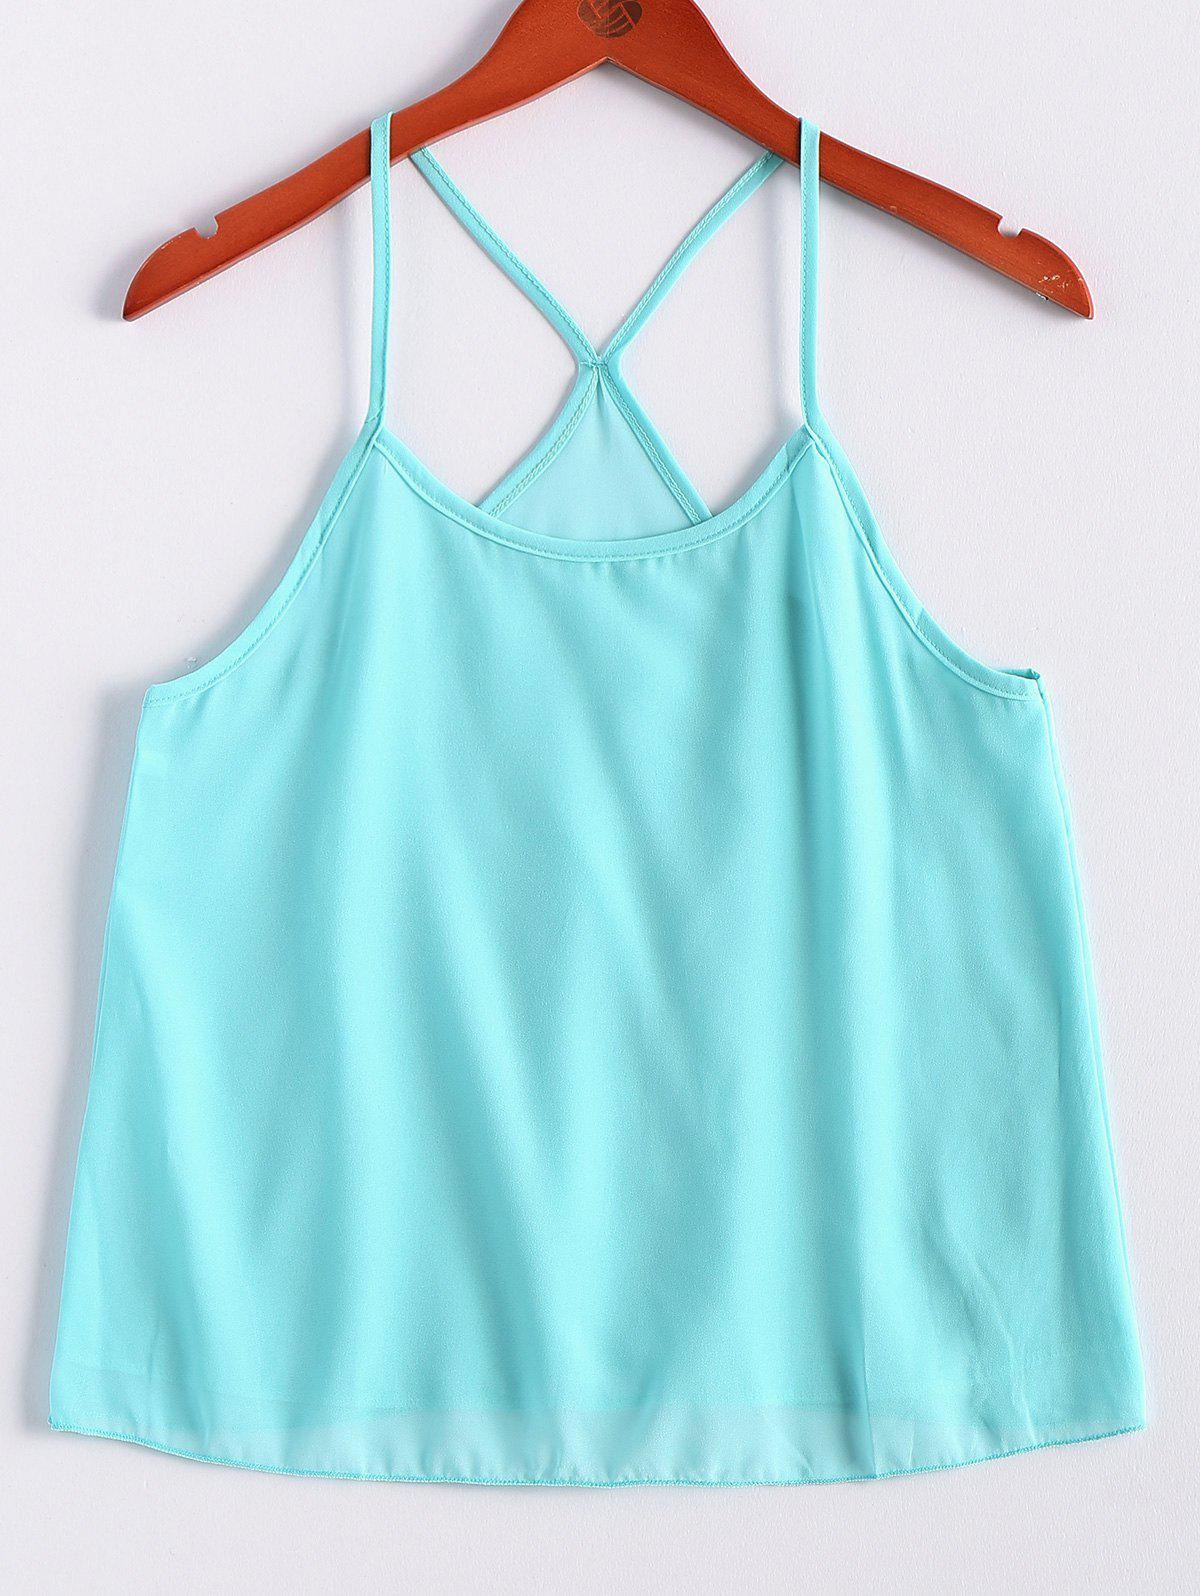 Spaghetti Strap Solid Color Camisole Top - LIGHT GREEN S